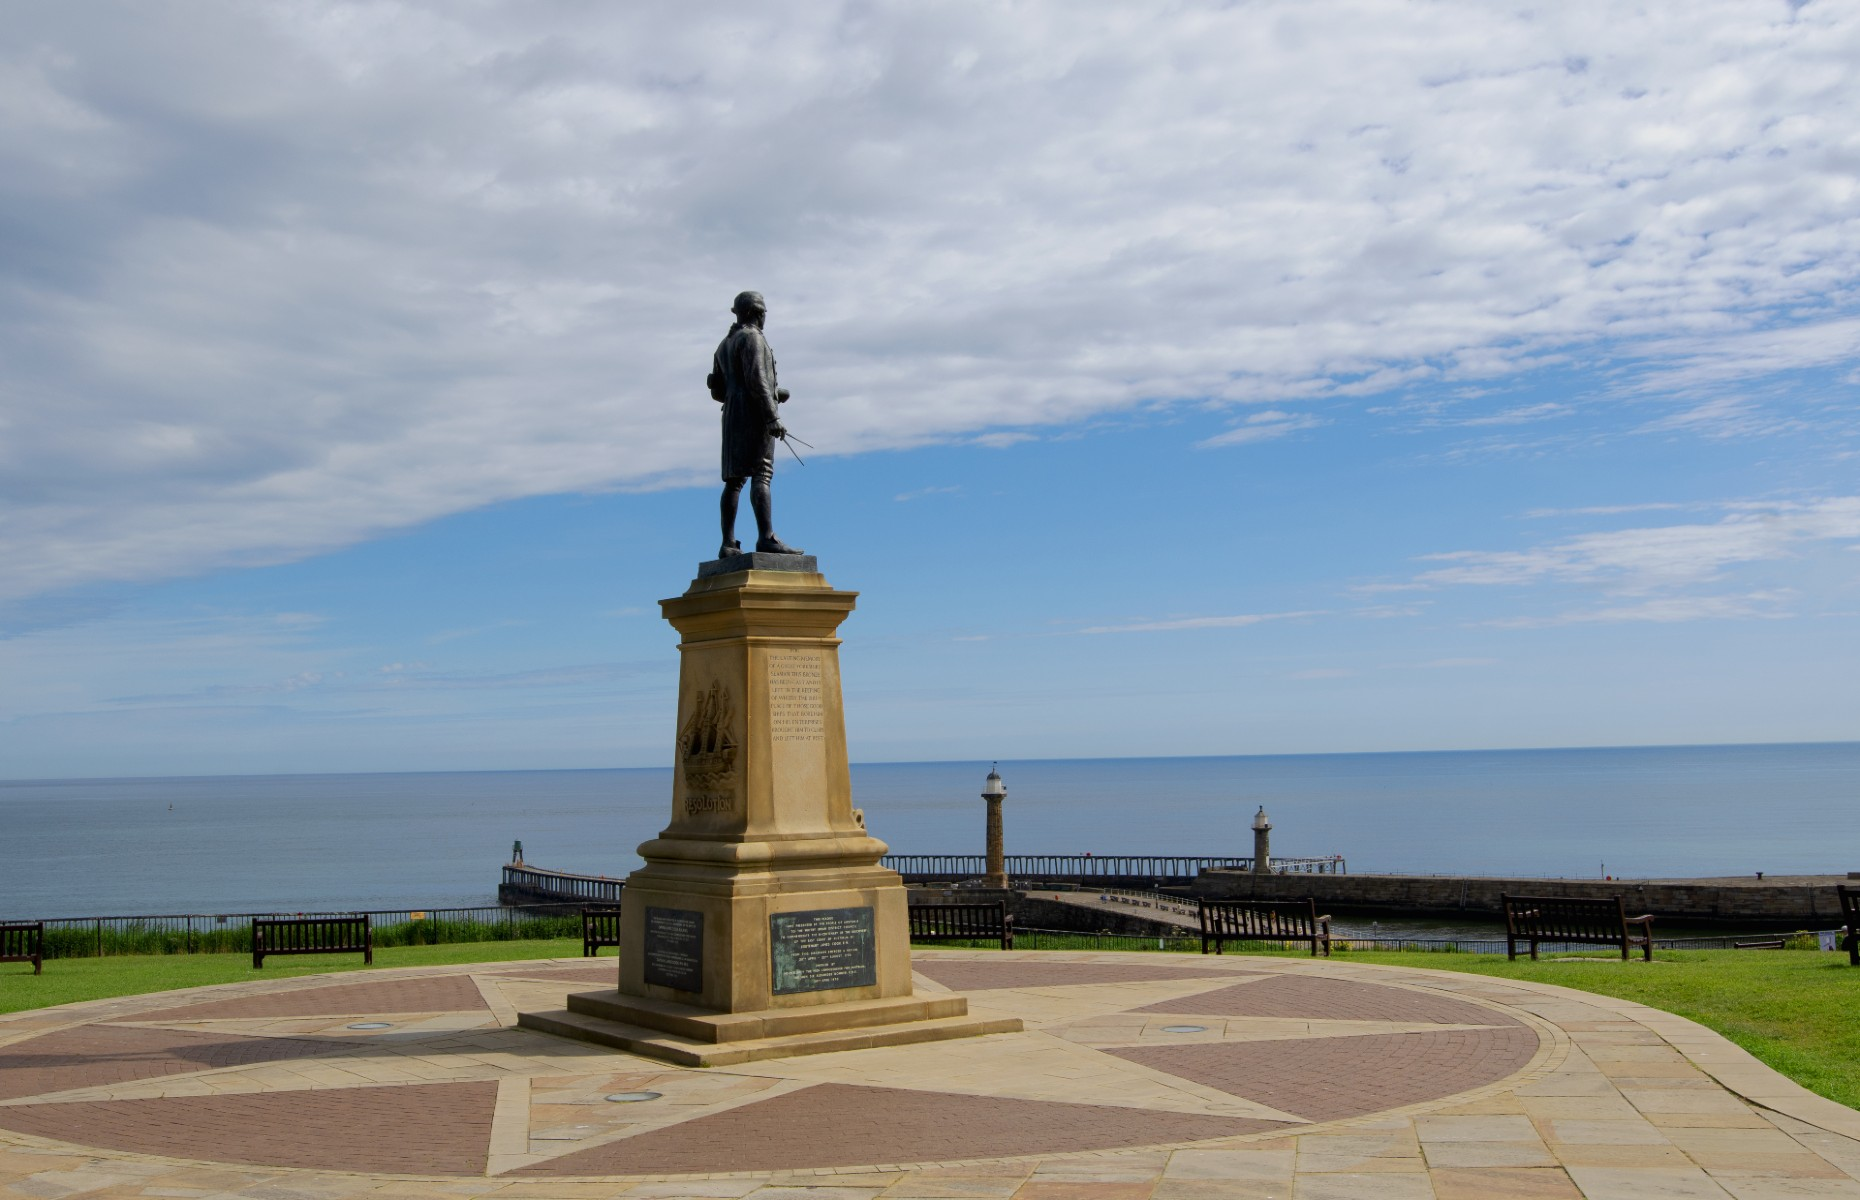 Captain Cook statue (Image: Peter is Shaw 1991/Shutterstock)